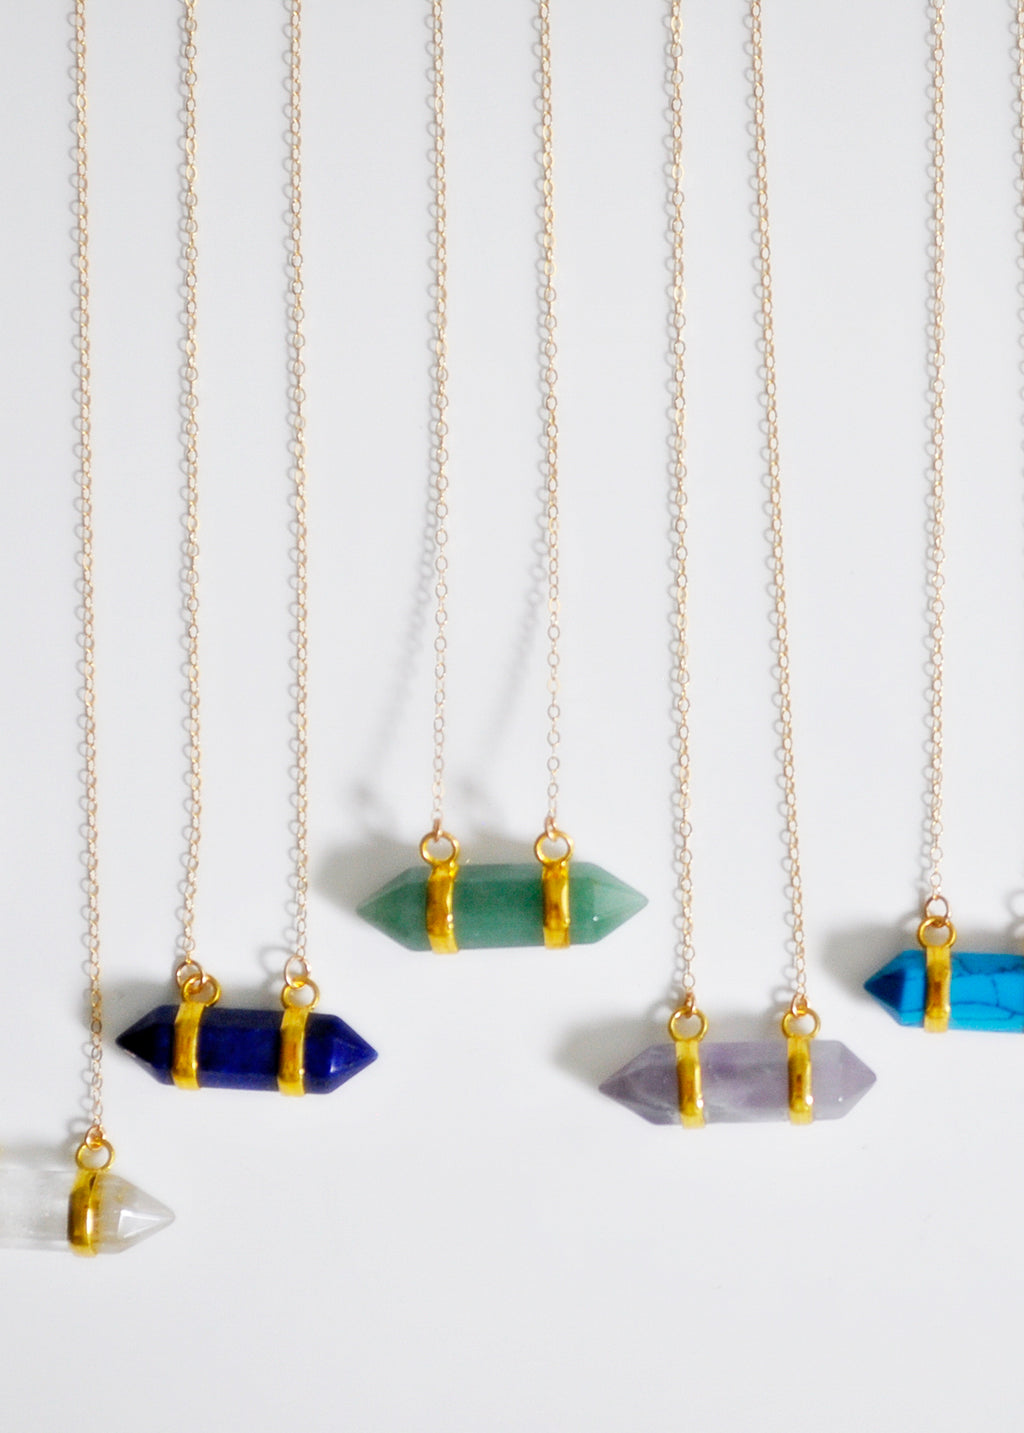 Gemstone Suspended Necklace